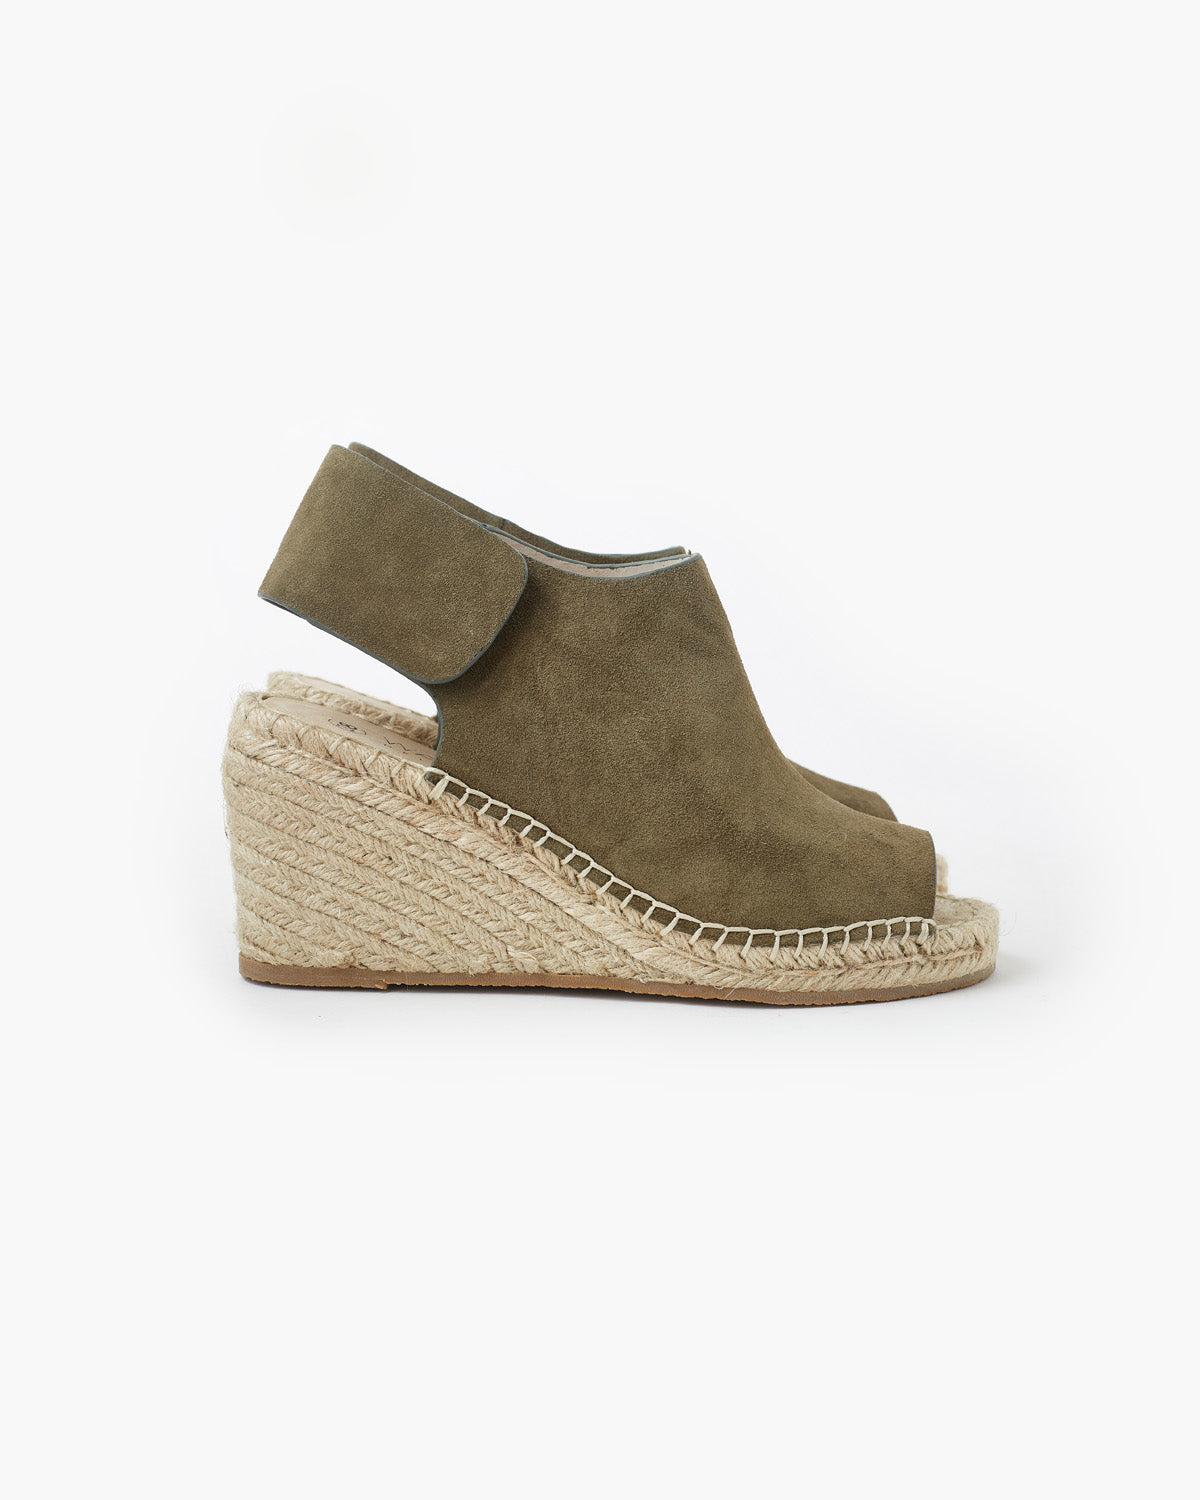 Vamp Leather Wedge - Khaki Suede